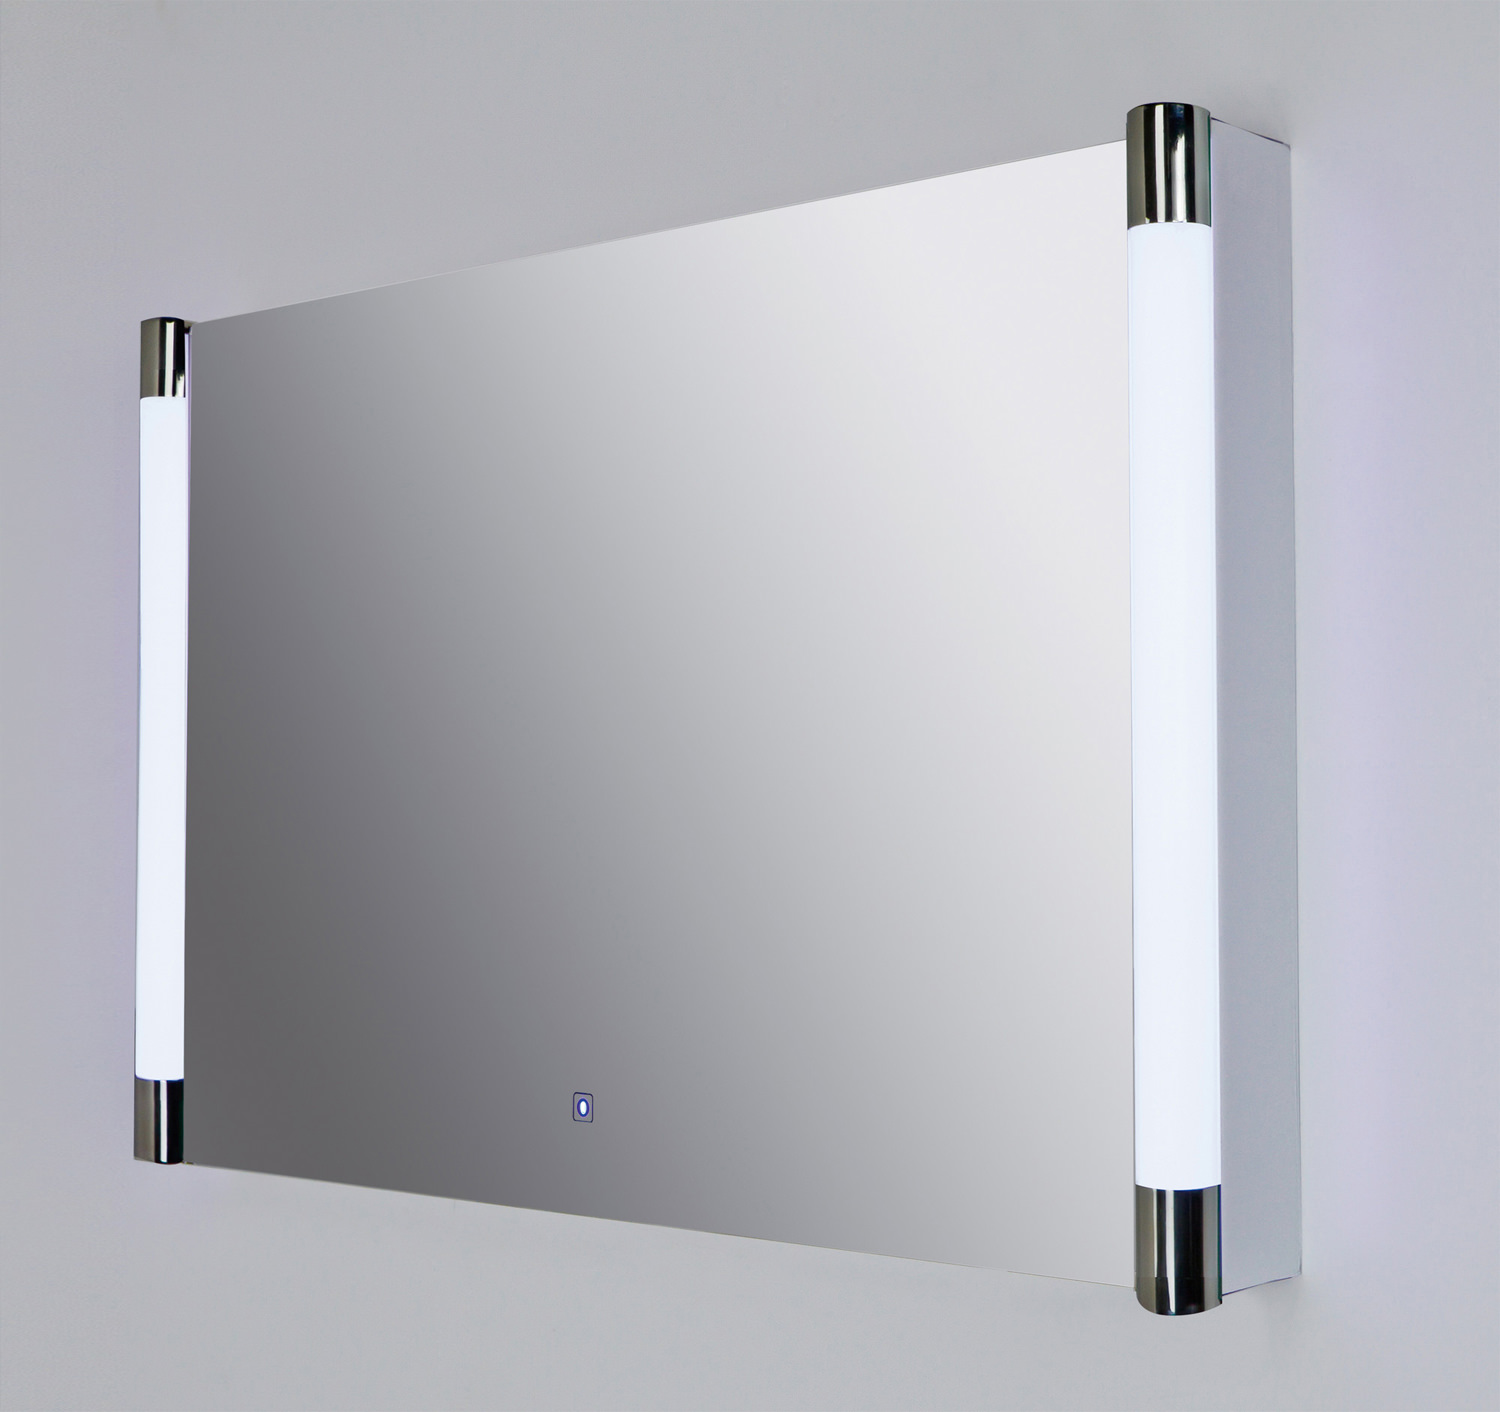 RAK Lucido 775 x 500mm Silver Framed Bathroom Mirror